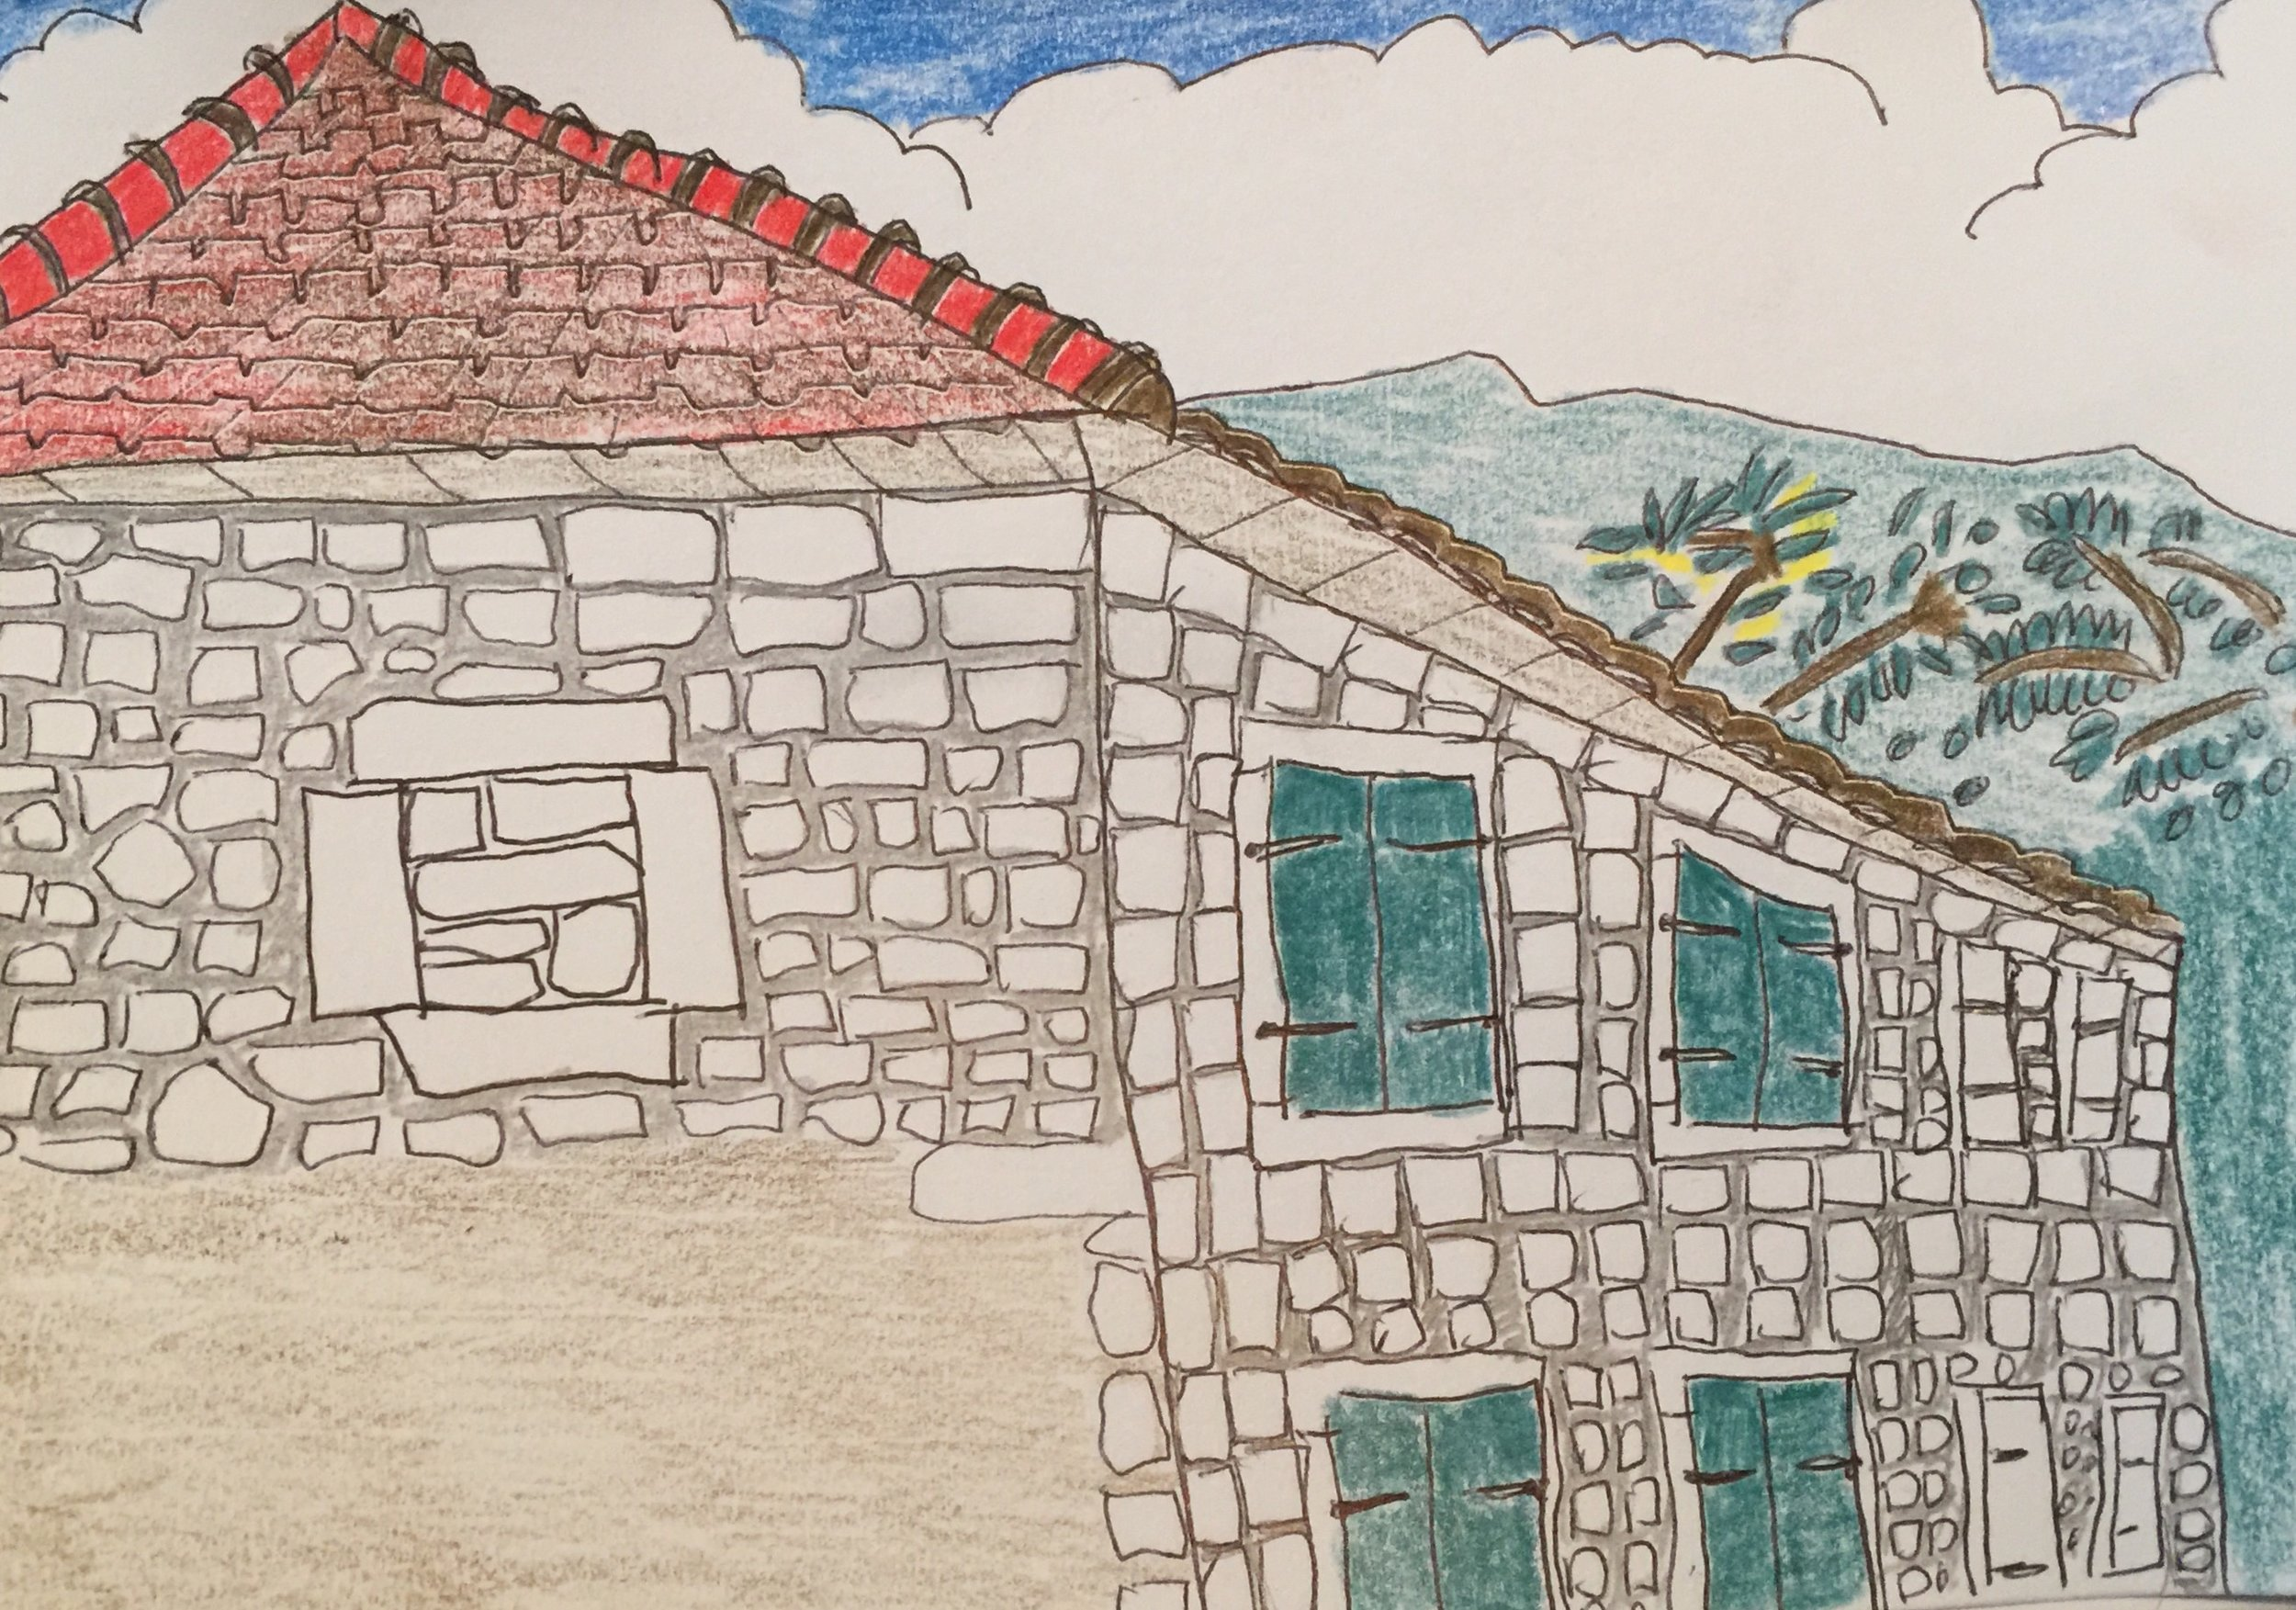 Tivat: the neighbour's house